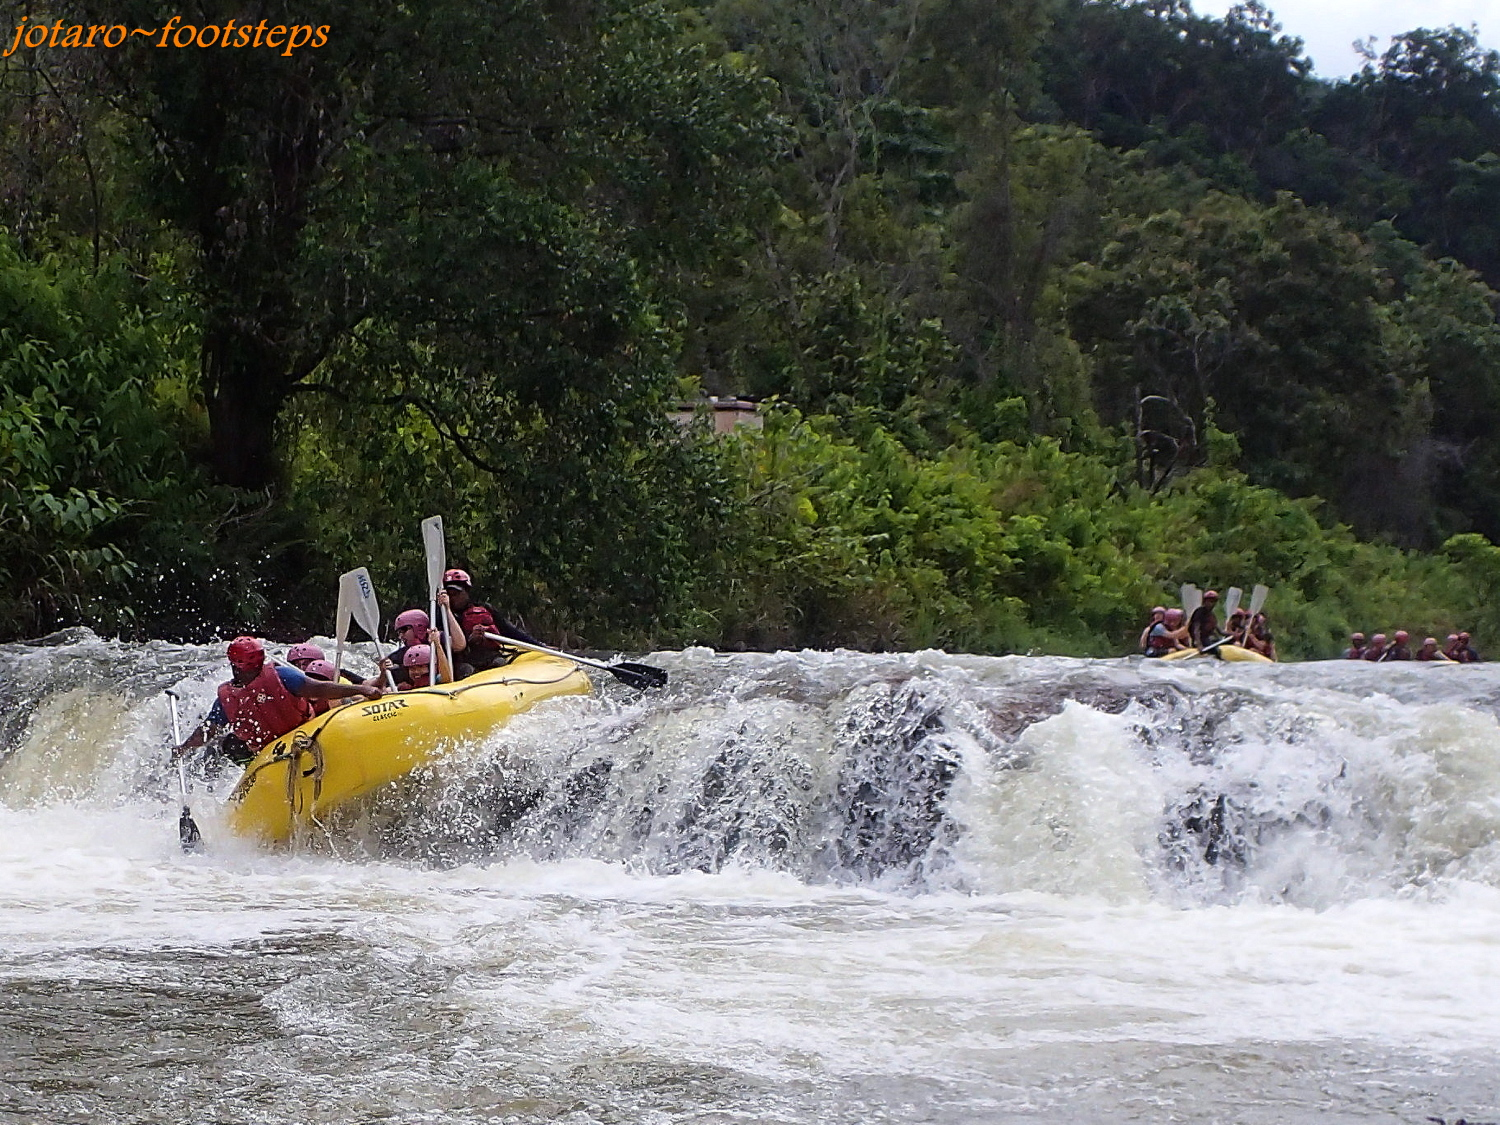 Footsteps - Jotaro's Travels: Malaysia 2015: White Water Rafting At